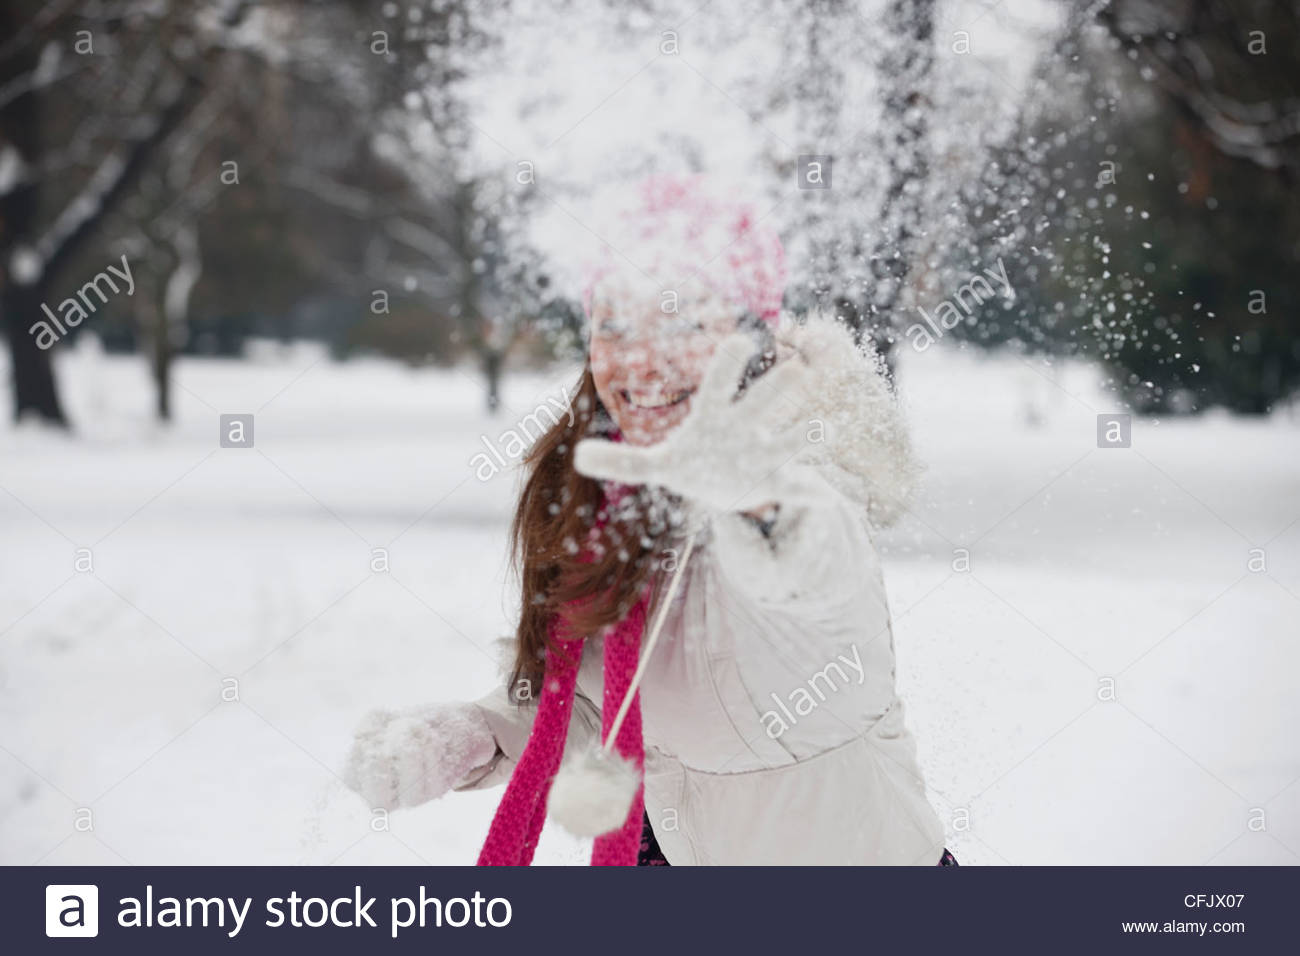 A young woman throwing a snowball - Stock Image